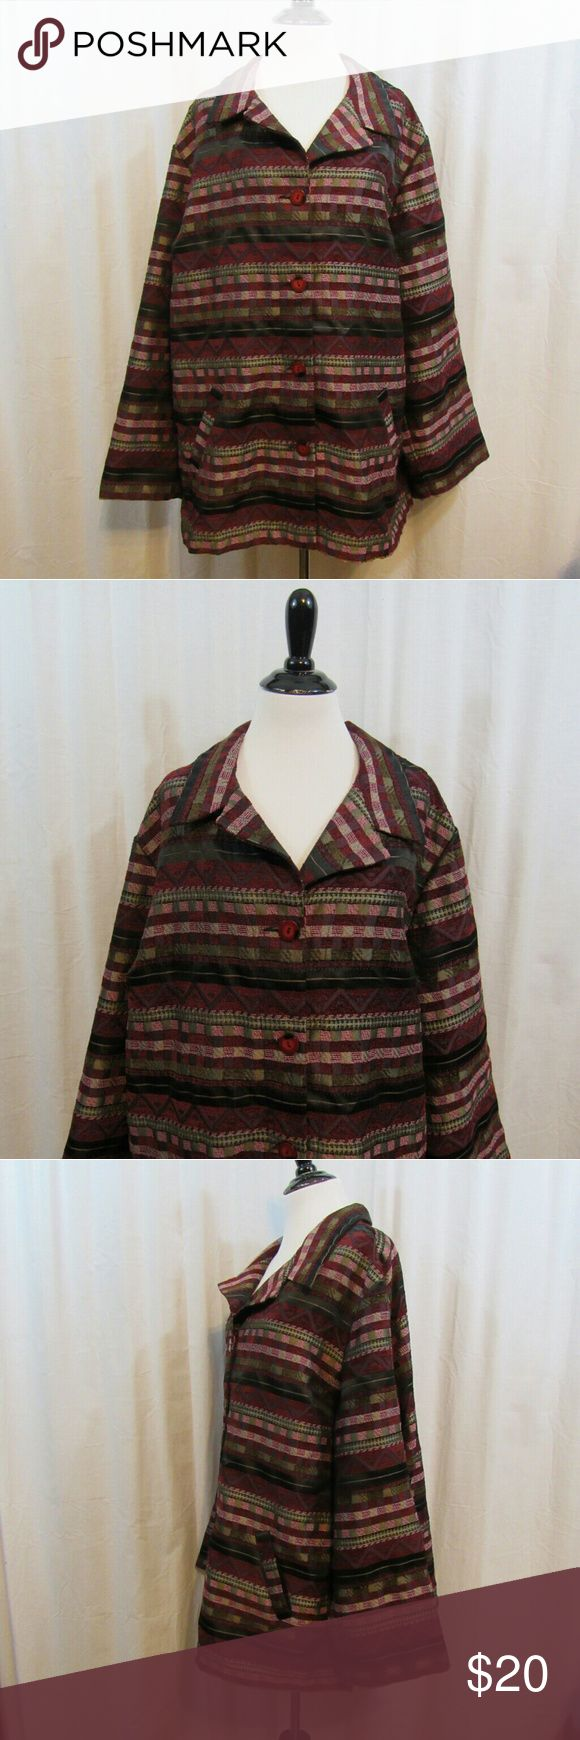 """Sag Harbor Burgundy Gray Light Jacket 22W Brand: Sag Harbor Size: 22W Material: 80% Polyester 20% Rayon  Care Instructions: Machine Wash  Bust: 54"""" Sleeves: 23 1/2"""" Length: 28""""  All clothes are in excellent used condition. No tears, stains or holes unless otherwise I noted.   P9 Sag Harbor Jackets & Coats"""